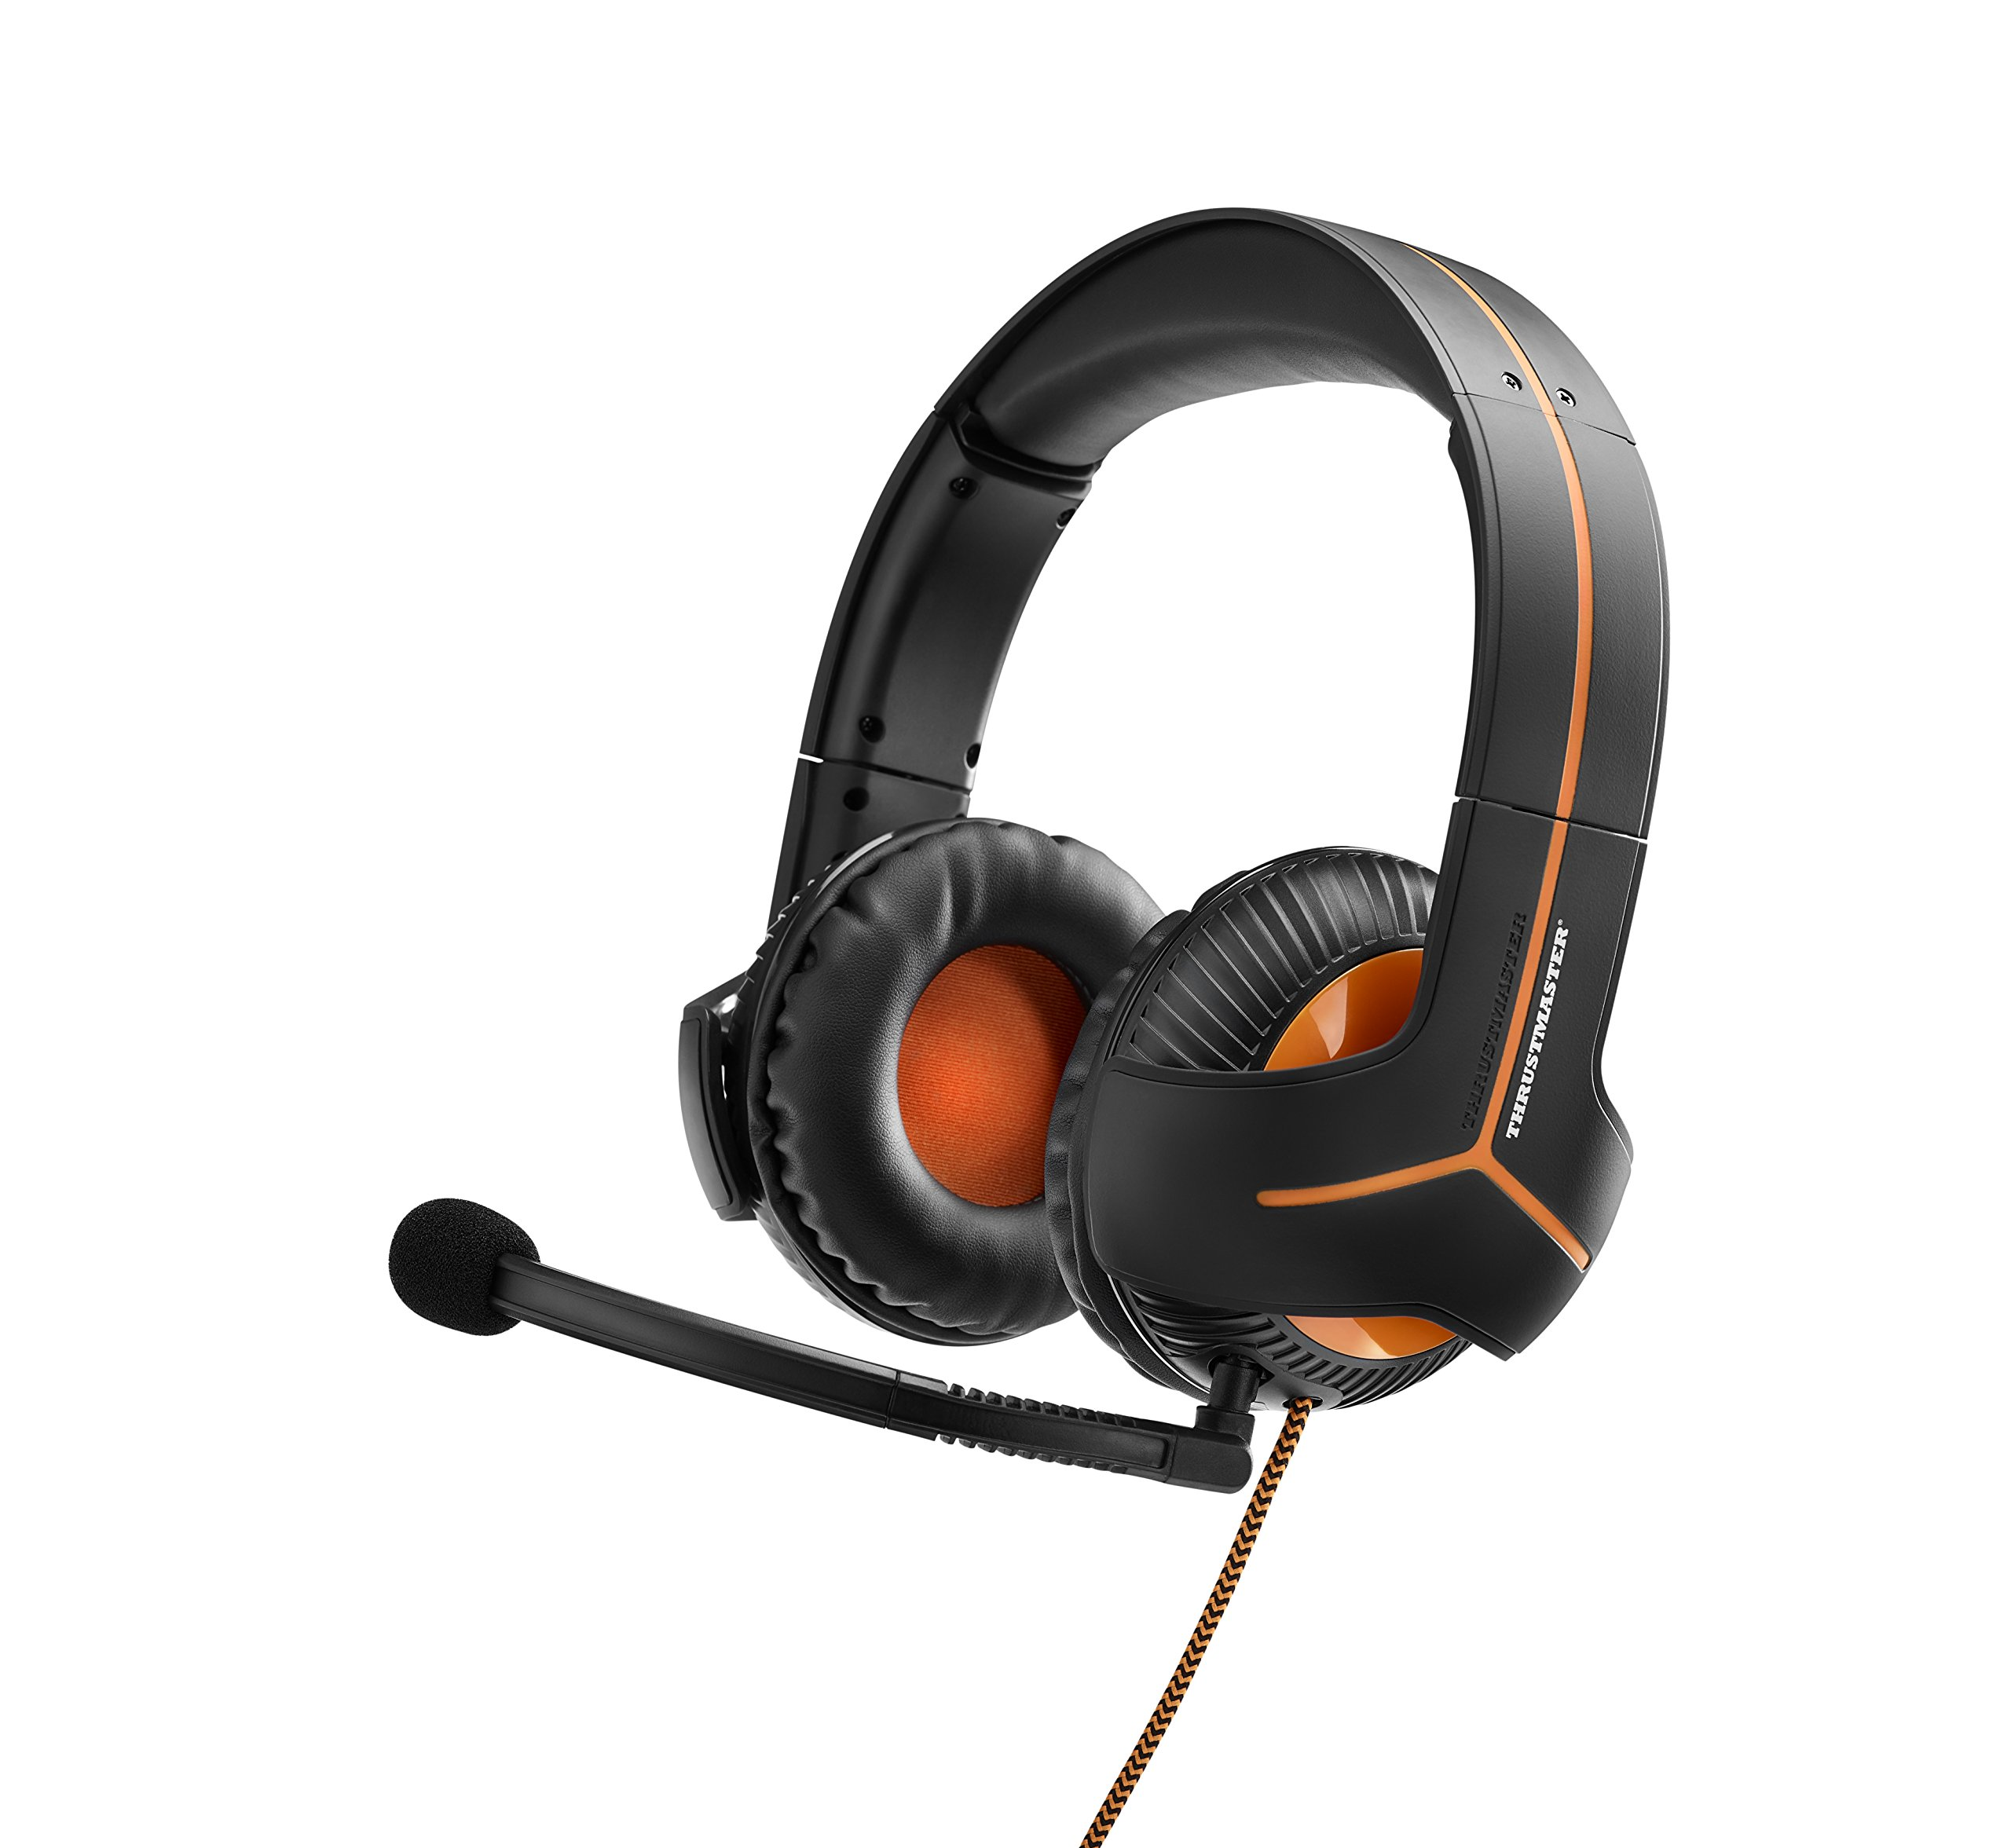 Auriculares Gamer : Thrustmaster Y-350CPX 7.1